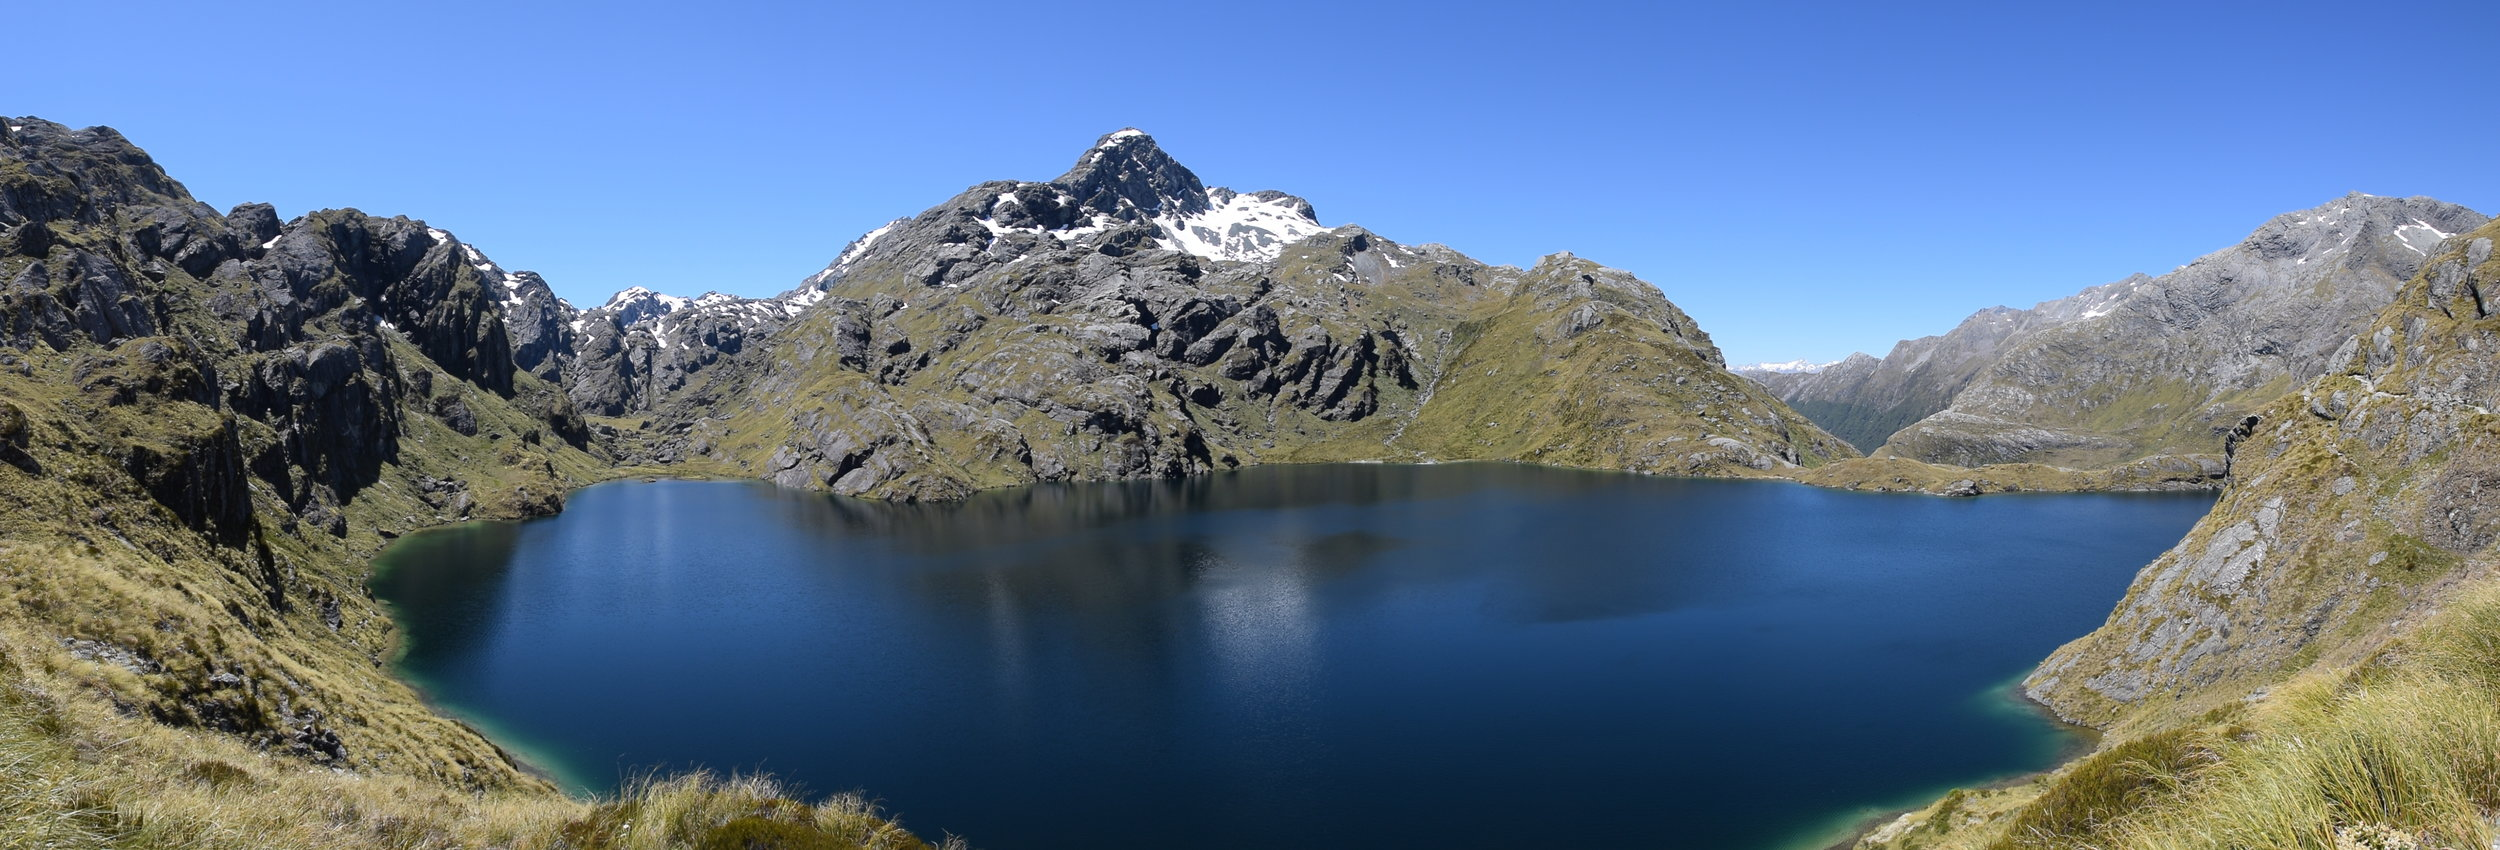 Lake McKerrow at the highest of the Routeburn Track.